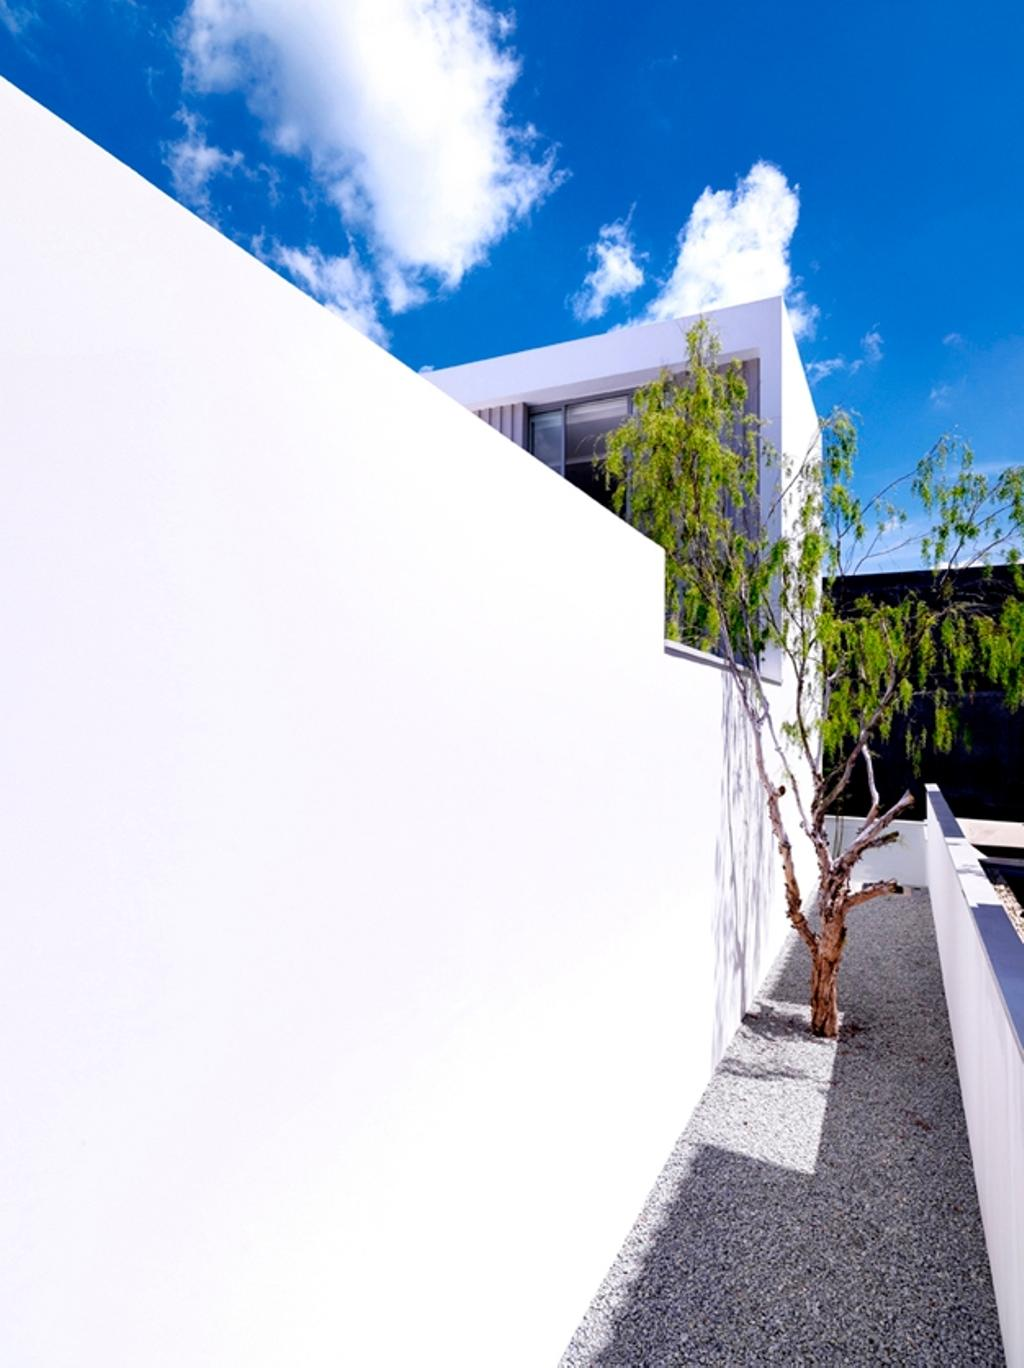 Modern, Landed, Ontario, Architect, Ministry of Design, Pebbles Path, Planted Trees, White Wall, Flora, Plant, Vine